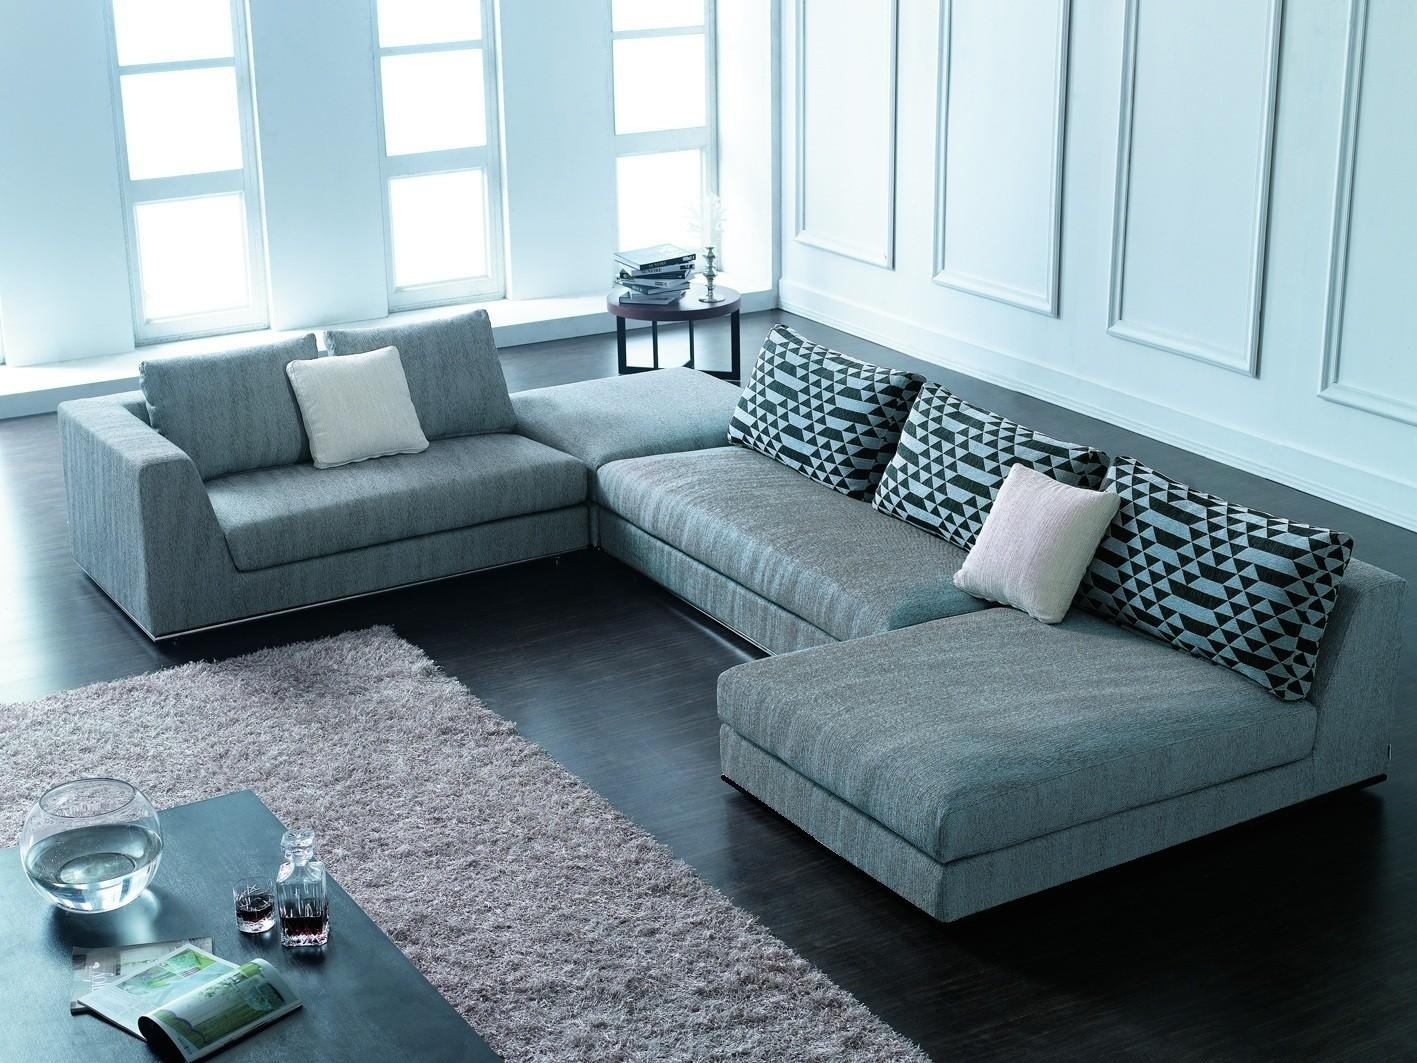 Sofas Center : Contemporary Sectional Sofa Small With Chaise Intended For Modern Sectional Sofas For Small Spaces (View 15 of 20)